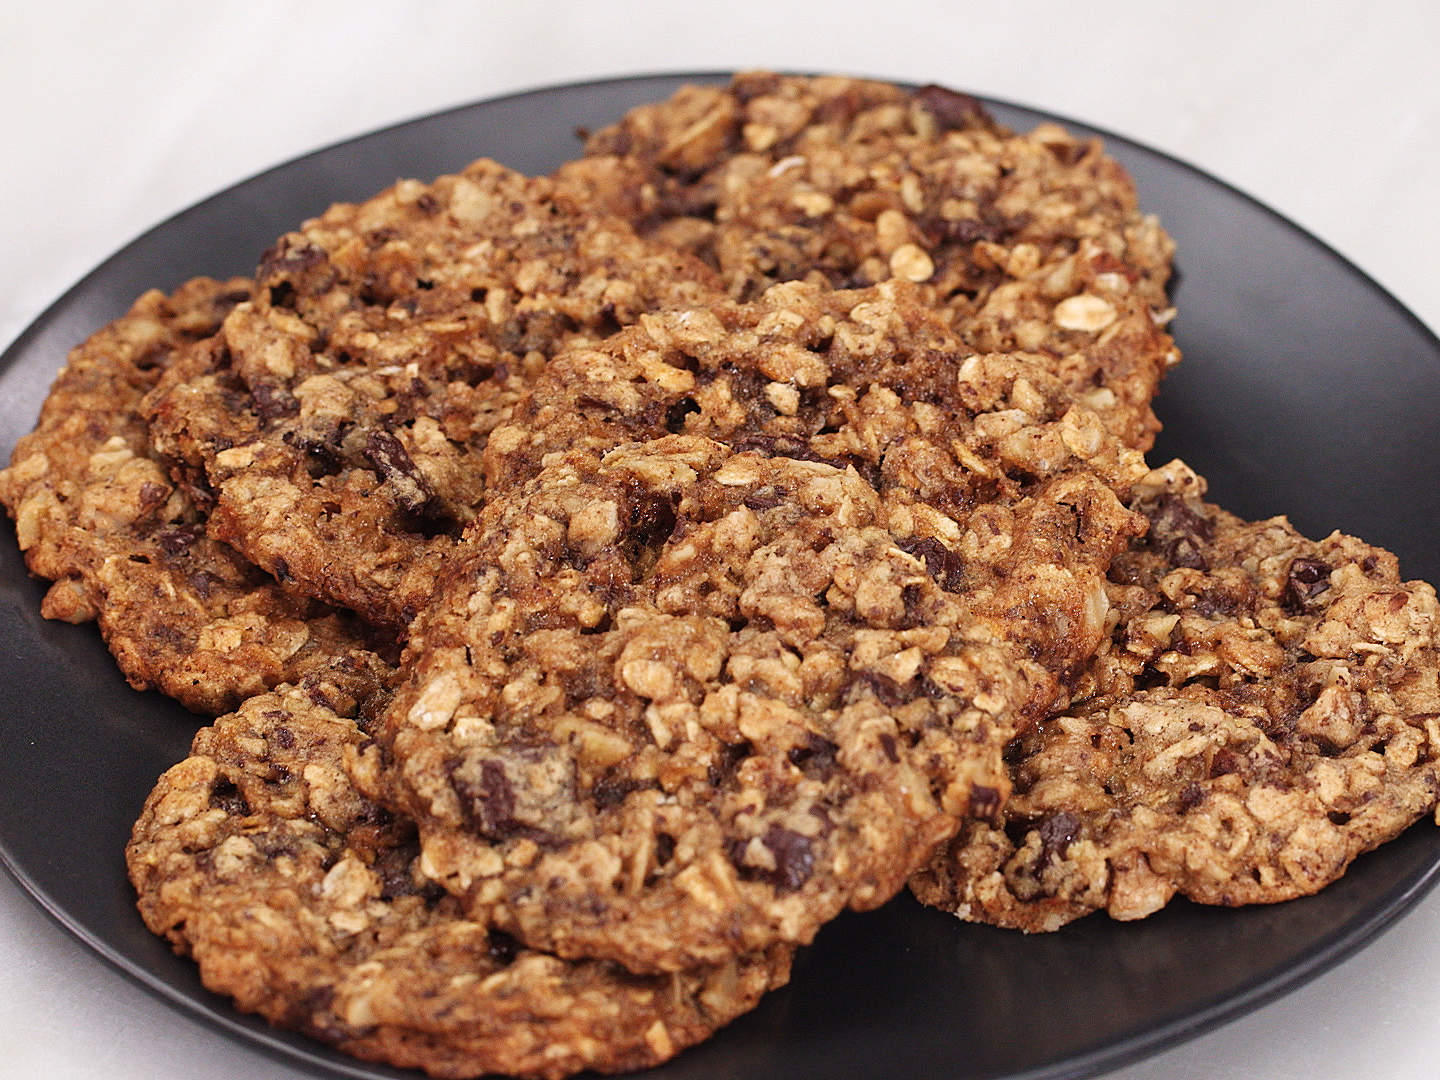 chocolate-chunk-and-walnut-oatmeal-cookies-brack-video